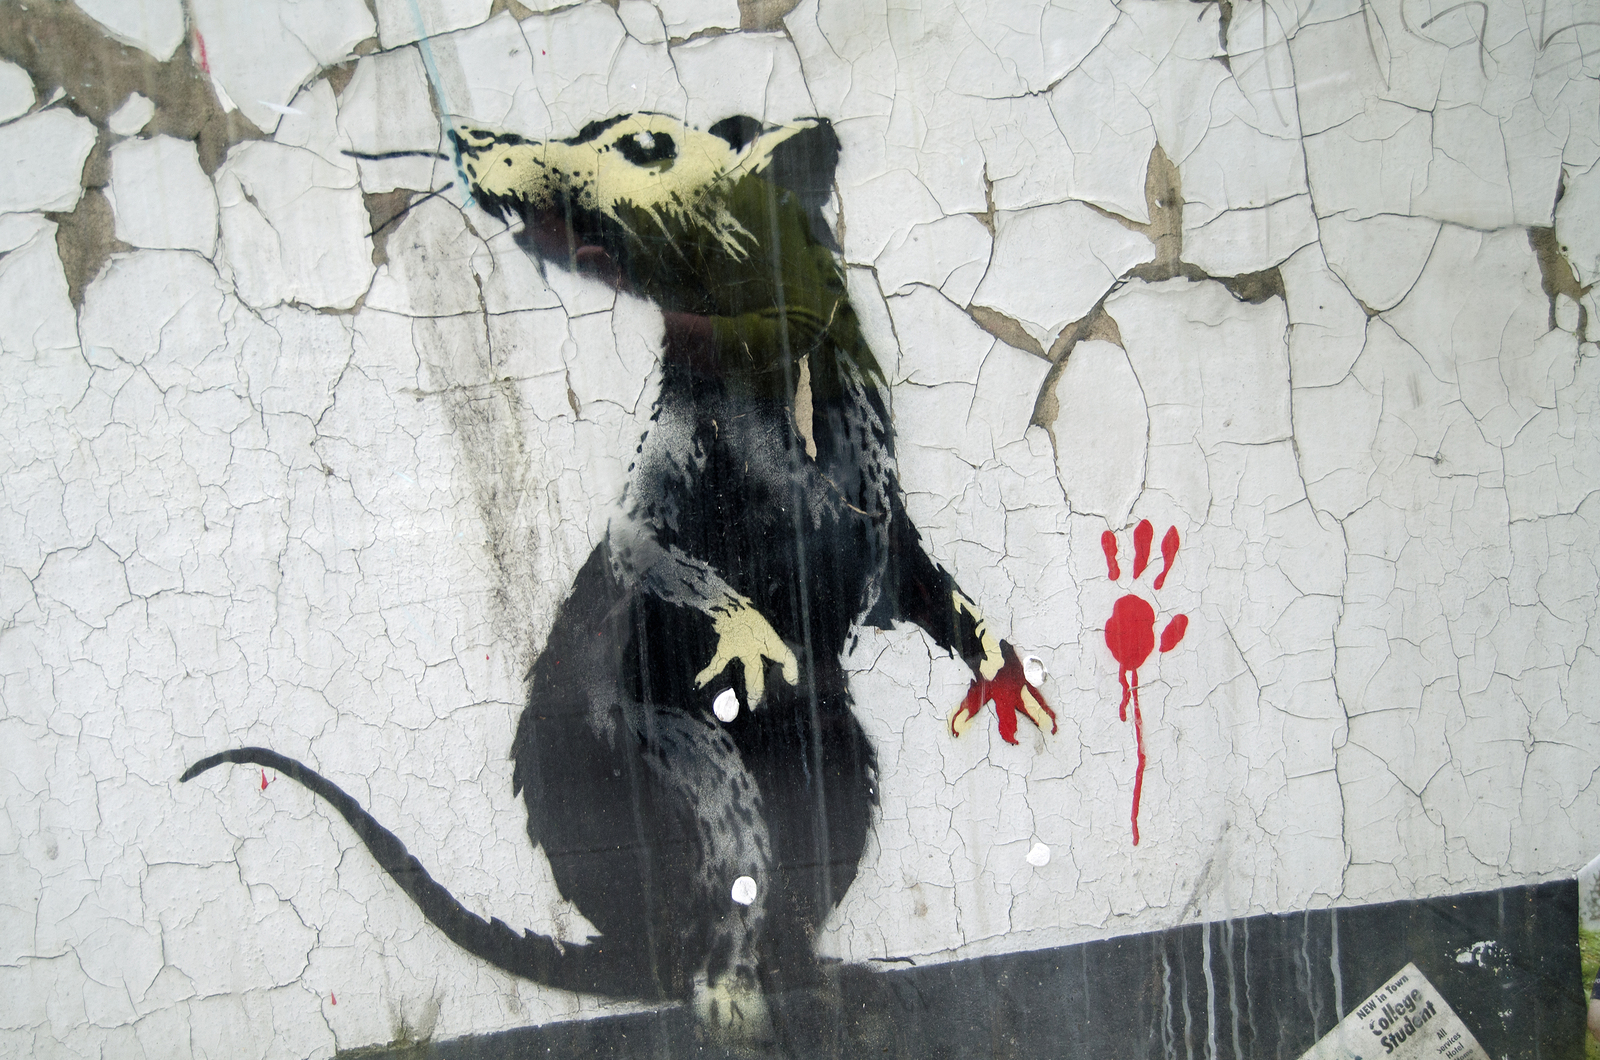 Banksy — The Most Wanted Street Artist in the World